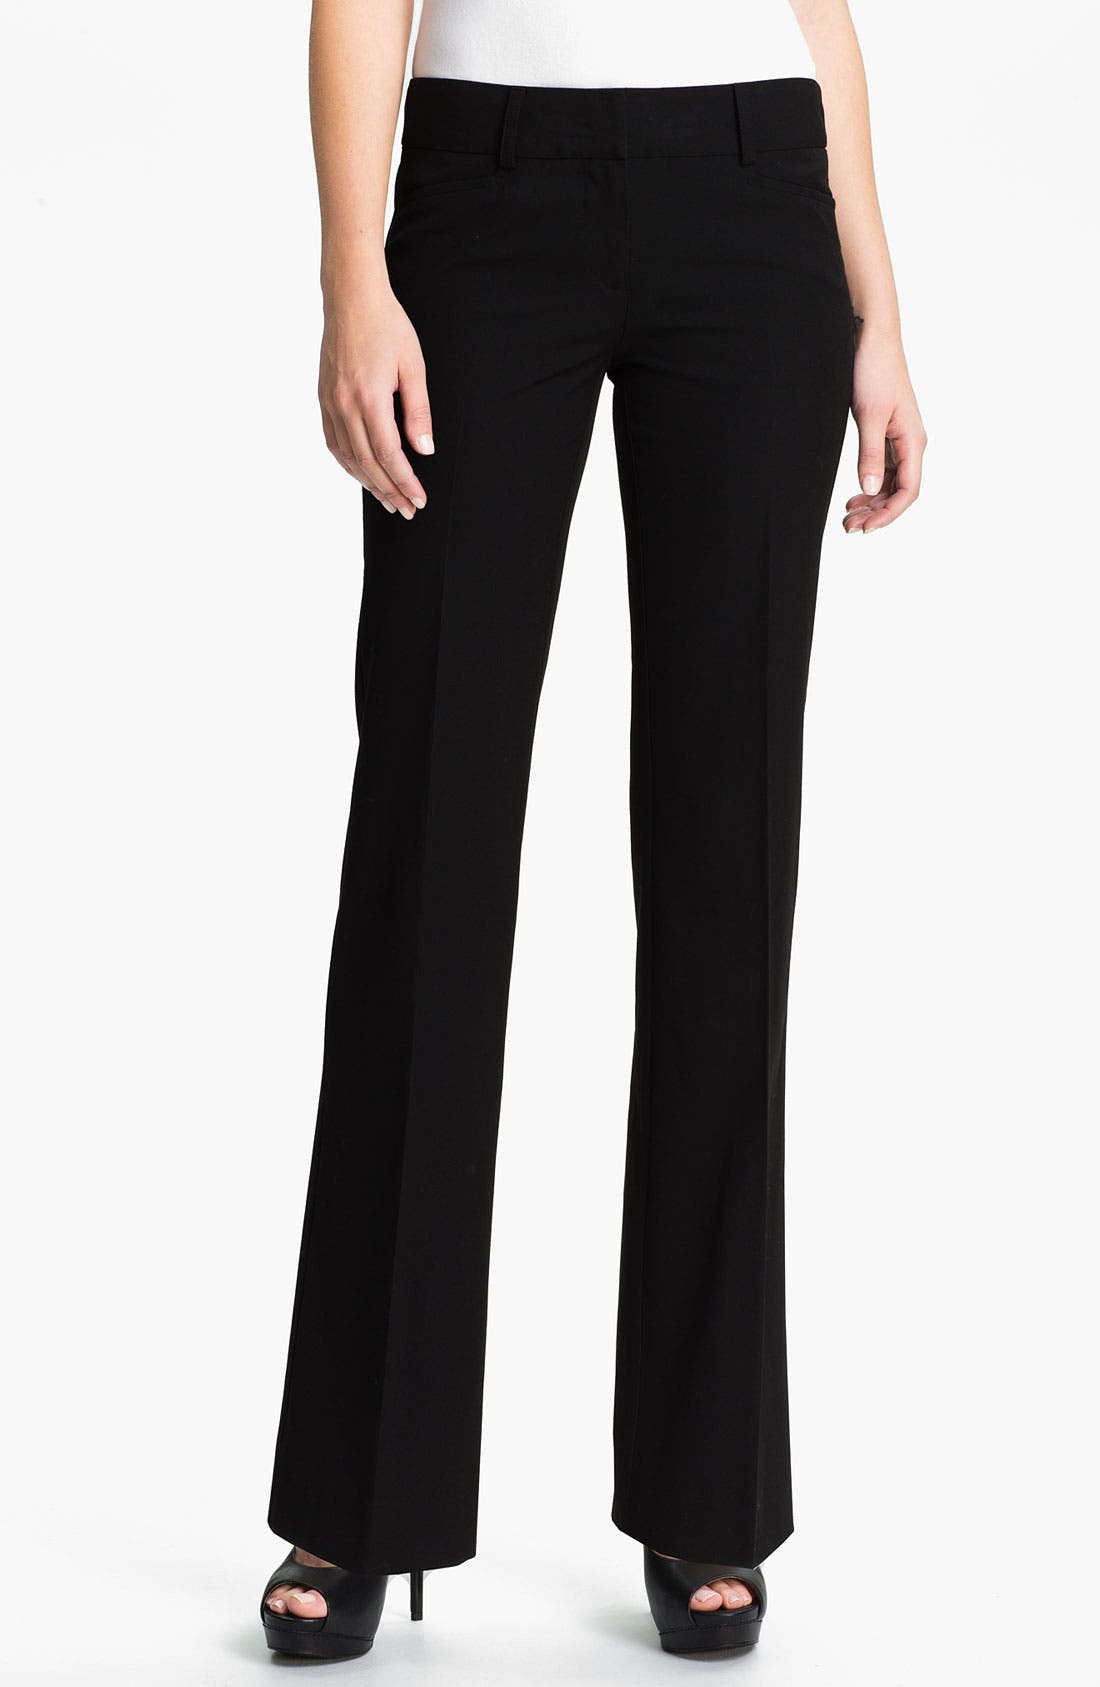 'Gramercy' Flare Leg Pants,                             Main thumbnail 1, color,                             001